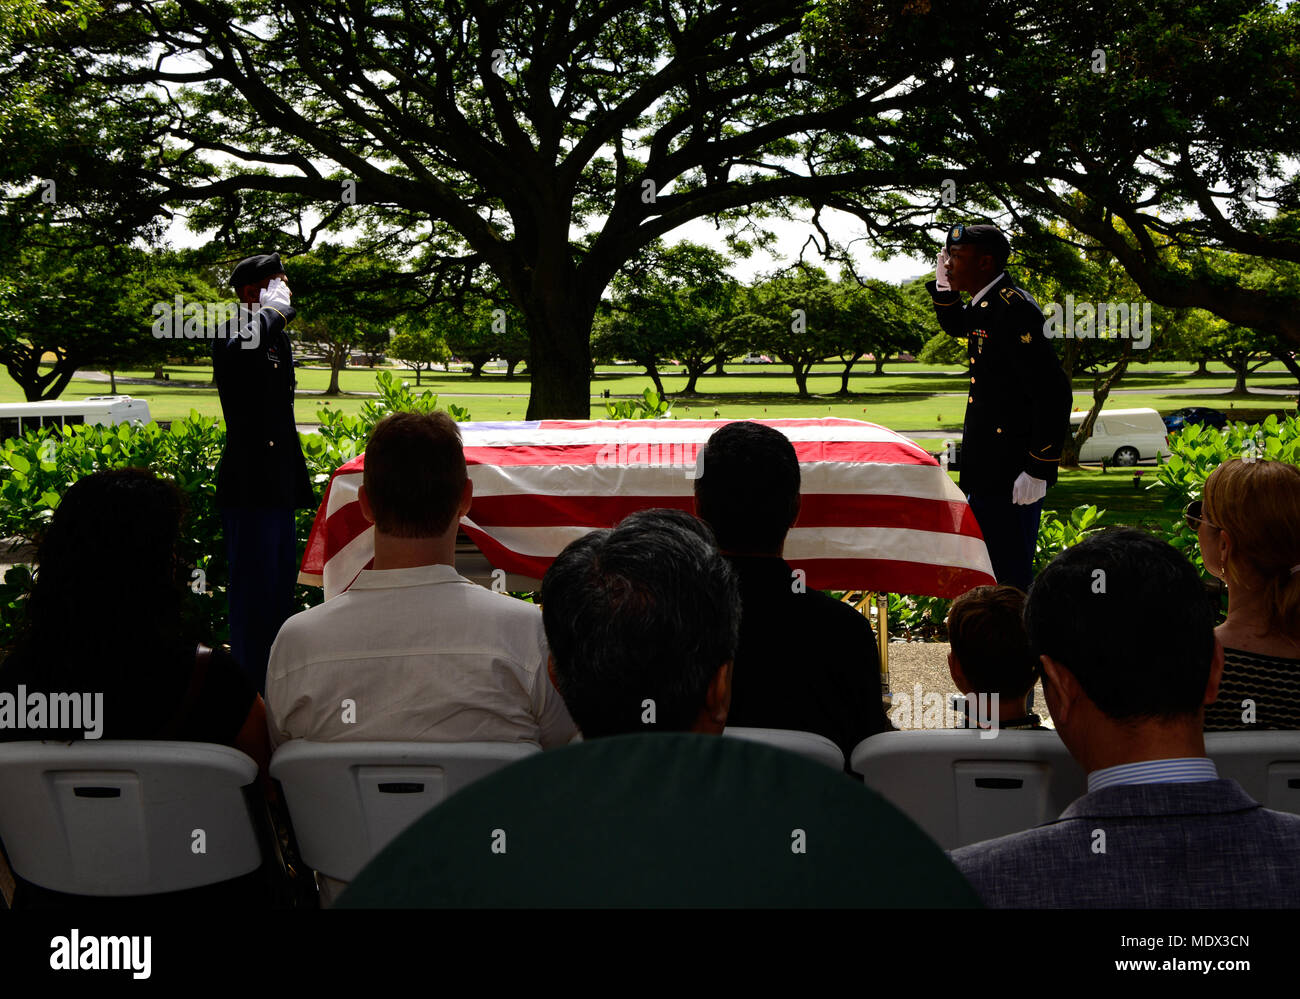 U.S. Soldiers assigned to 225th Brigade Support Battalion, 2nd Infantry Brigade Combat Team, 25th Infantry Division salute the remains of U.S. Army Pfc. Albert E. Atkins, Dec. 15, 2017, in the National Memorial Cemetery of the Pacific, Honolulu, Hawaii. On May 23, 1951, Atkins, a member of Company E, 2nd Battalion, 187th Airborne Infantry Regiment, 187th Airborne Regimental Combat Team, engaged enemy forces with his unit near Mae-Bong, South Korea. Atkins and two other soldiers from his company were reported missing in action. Atkins was recently identified through DNA analysis with the help o - Stock Image